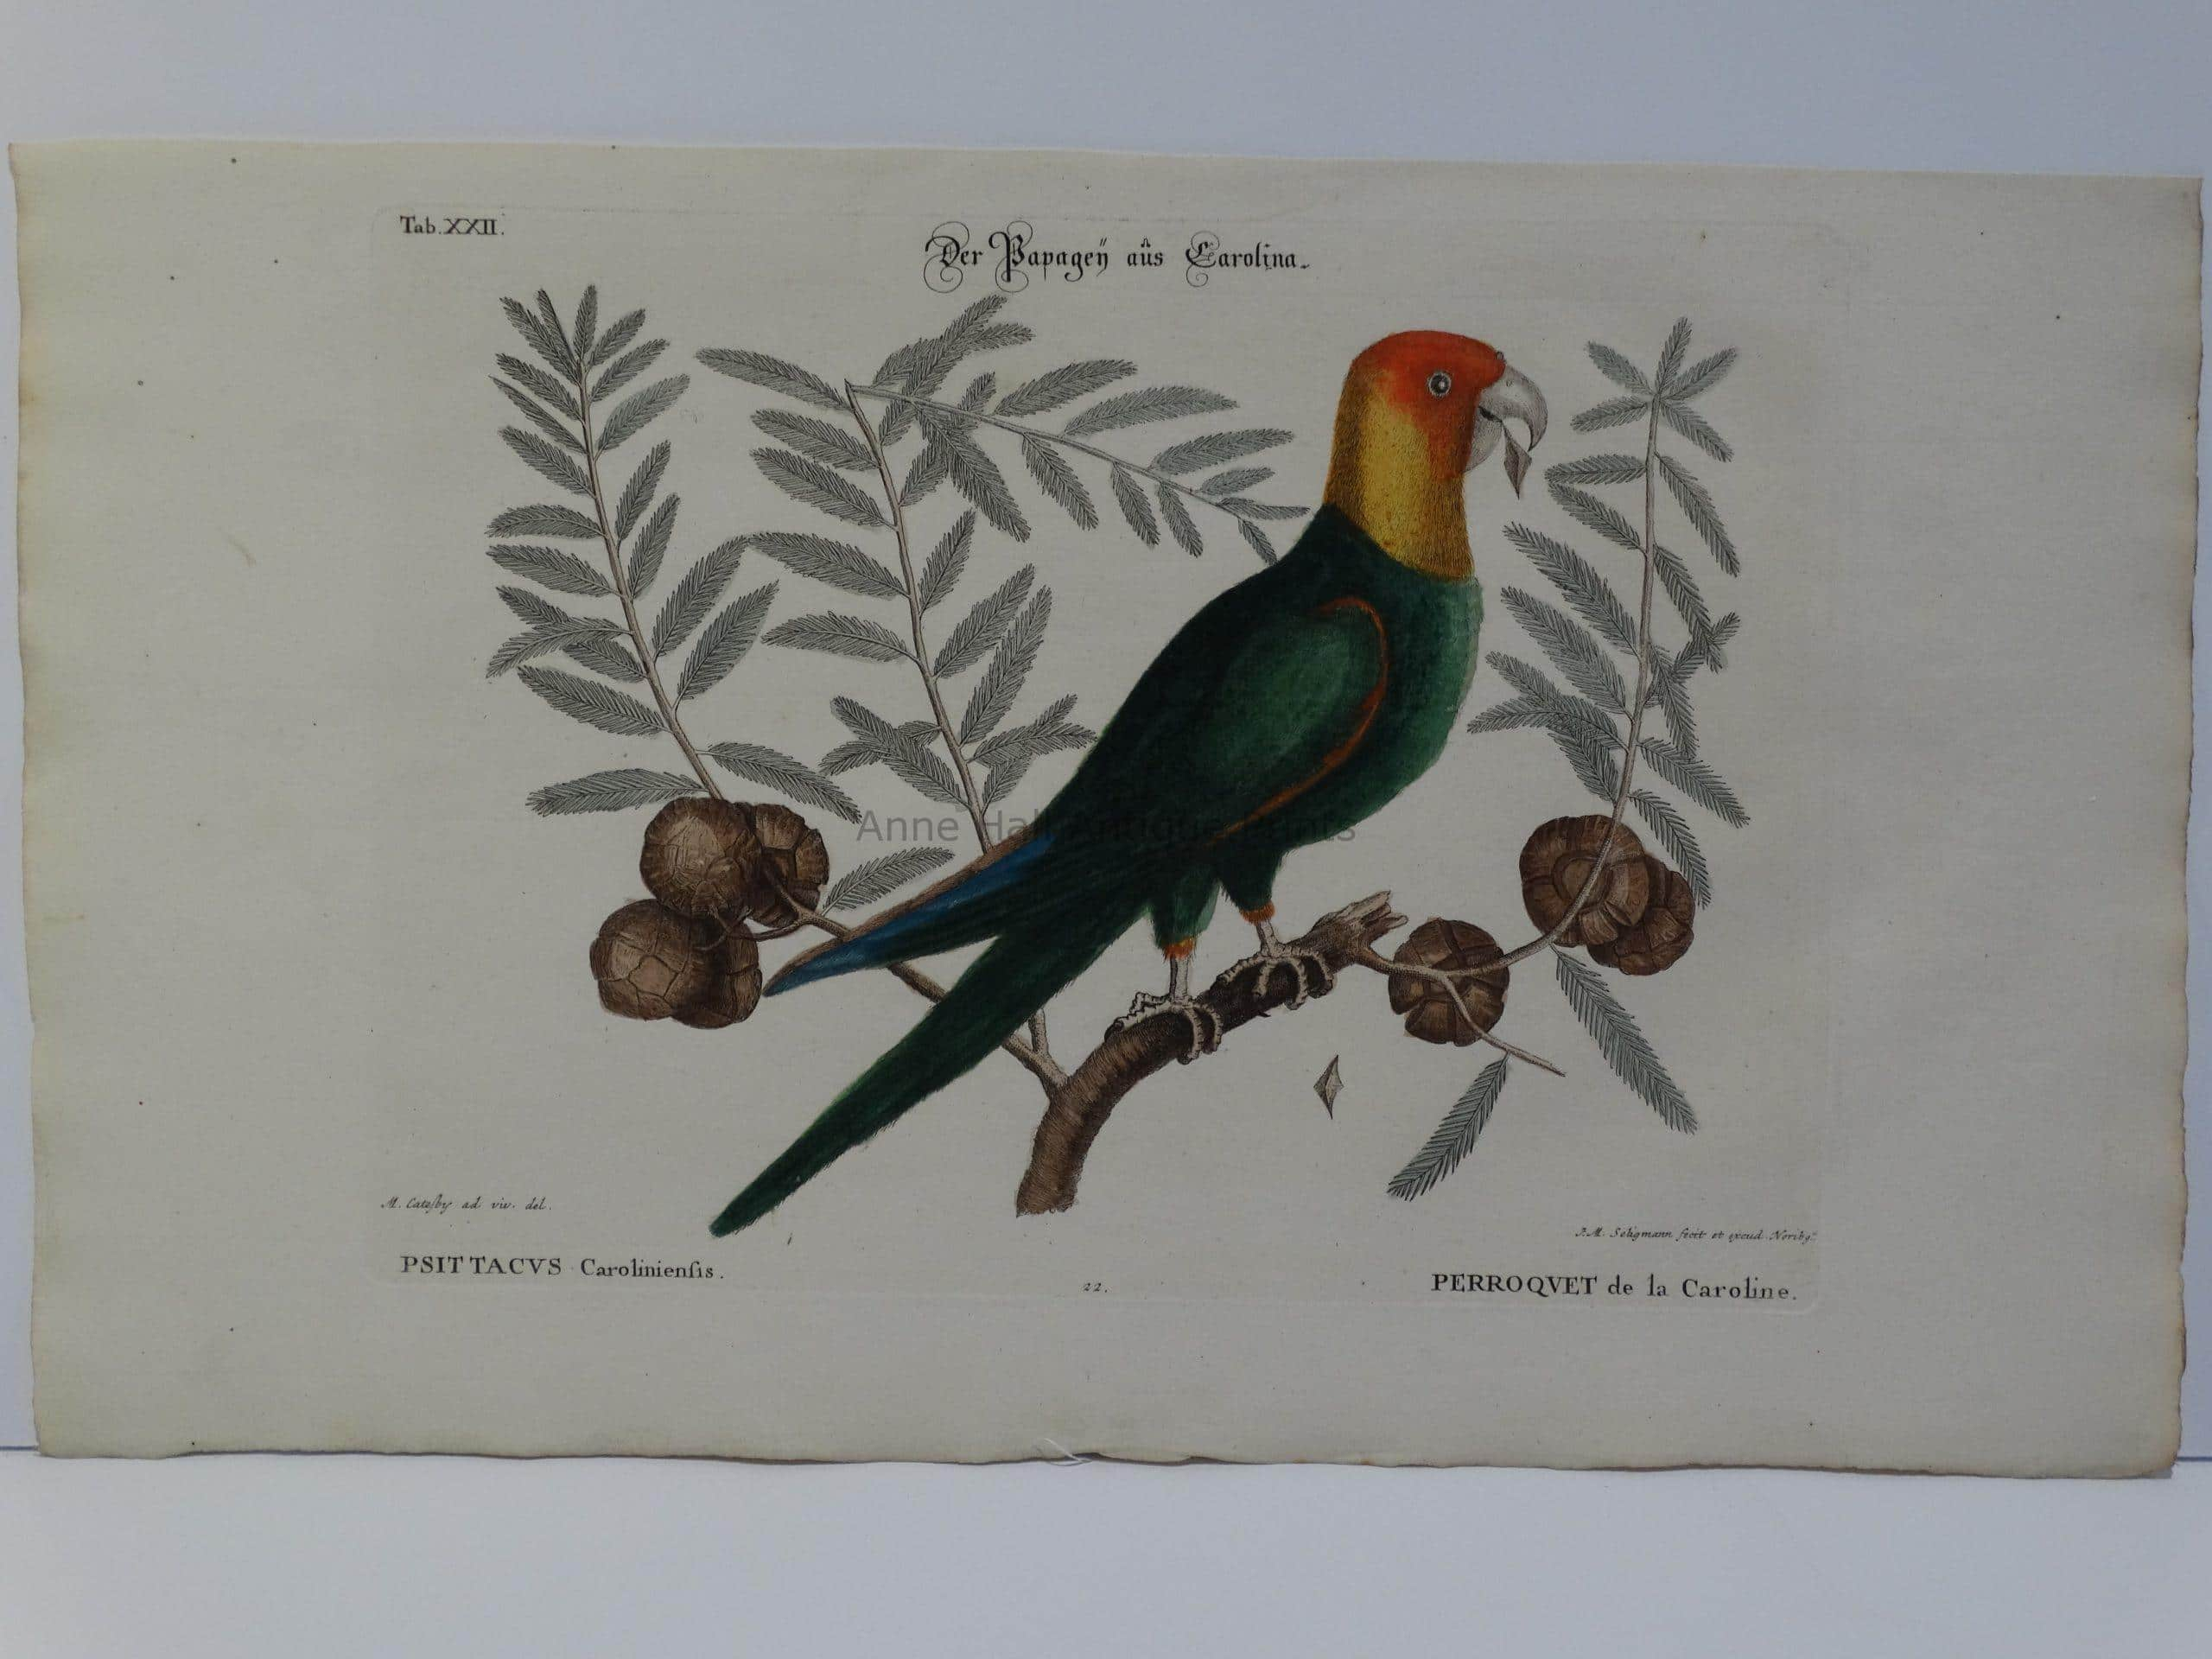 Rare hand-colored engraving for Mark Catesby's Carolina Parrot or Parakeet.